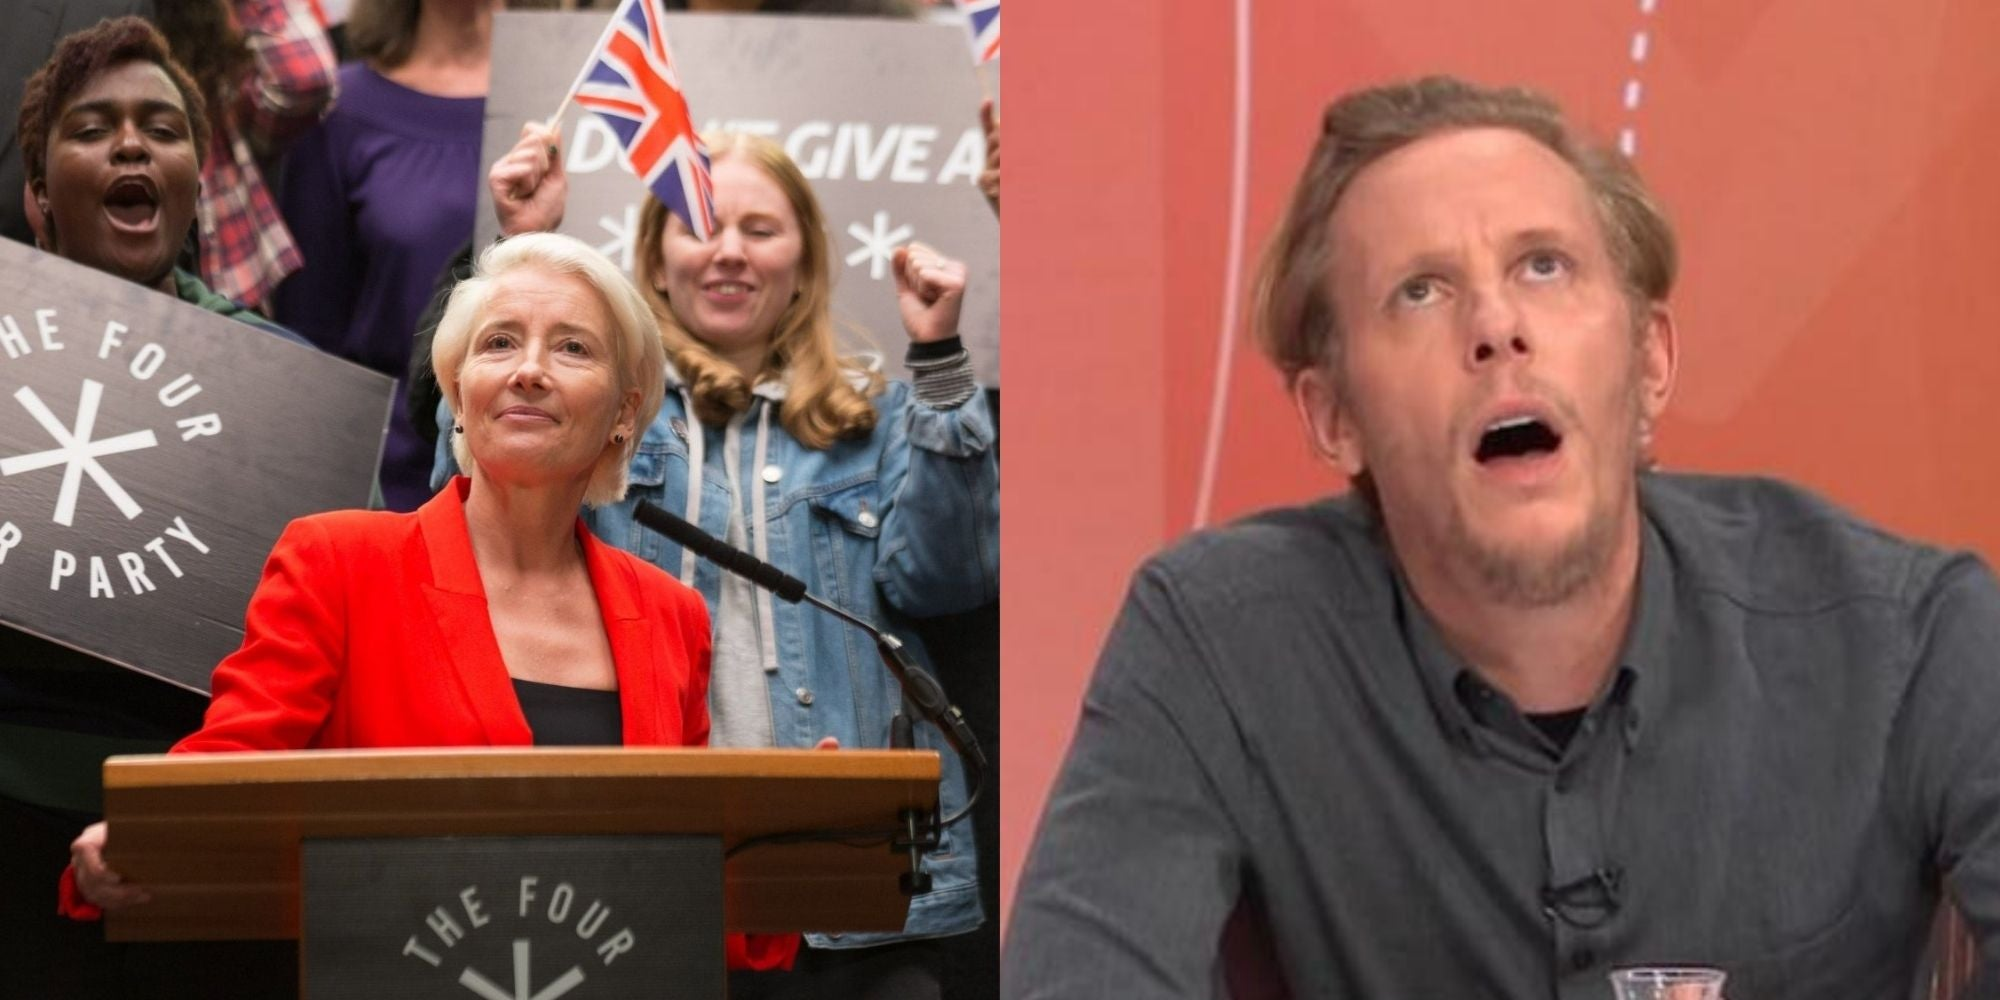 Laurence Fox's new political party is reminding people of a chilling plot from Years and Years